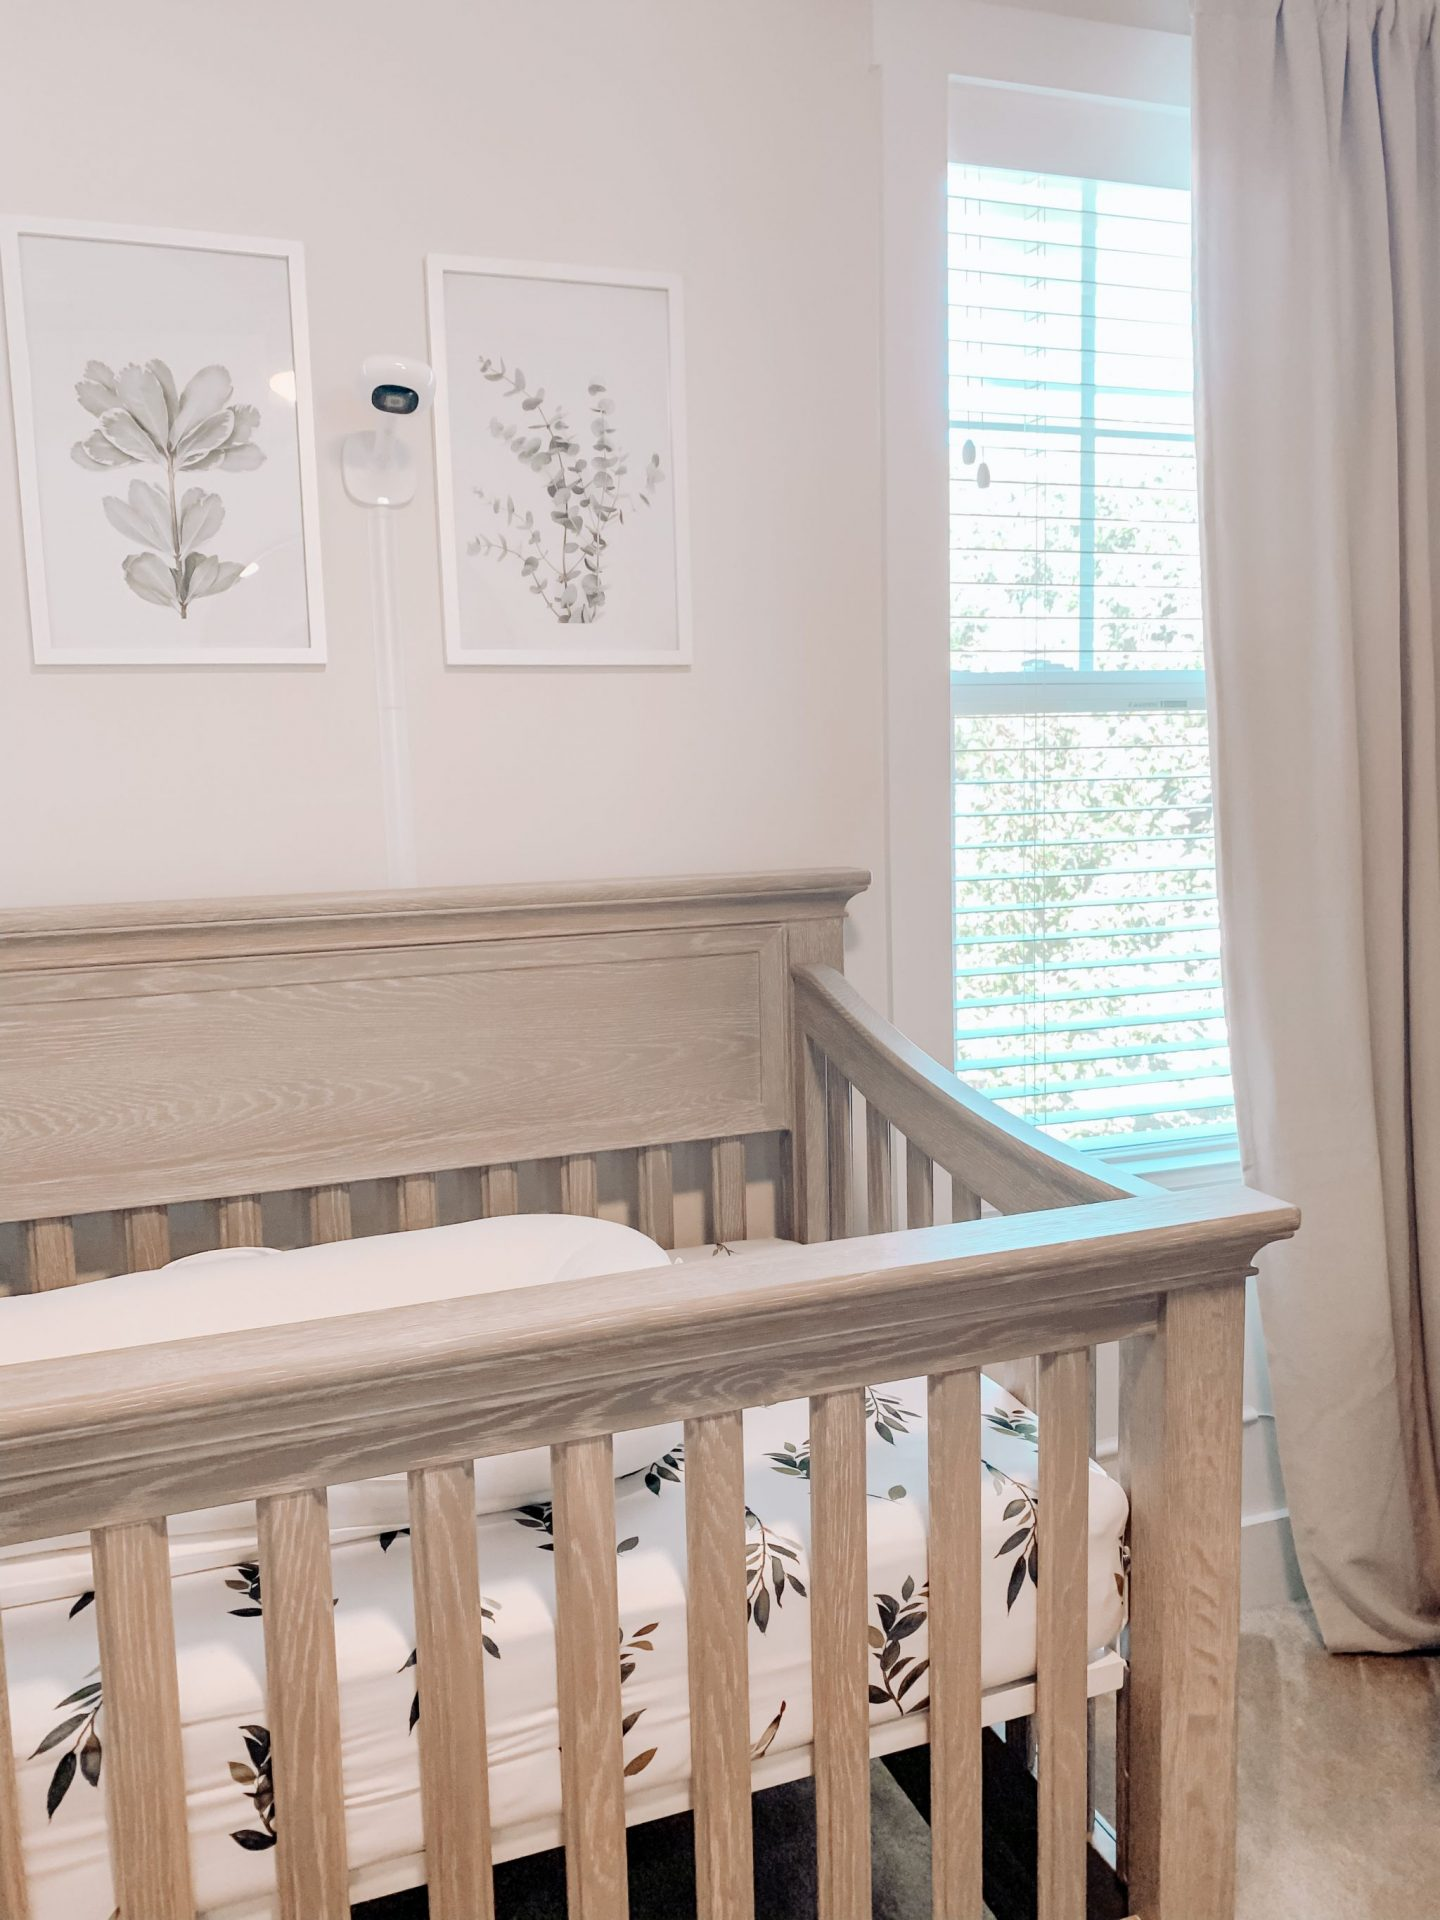 Currently Expecting: Our Bright and Airy Nursery Reveal